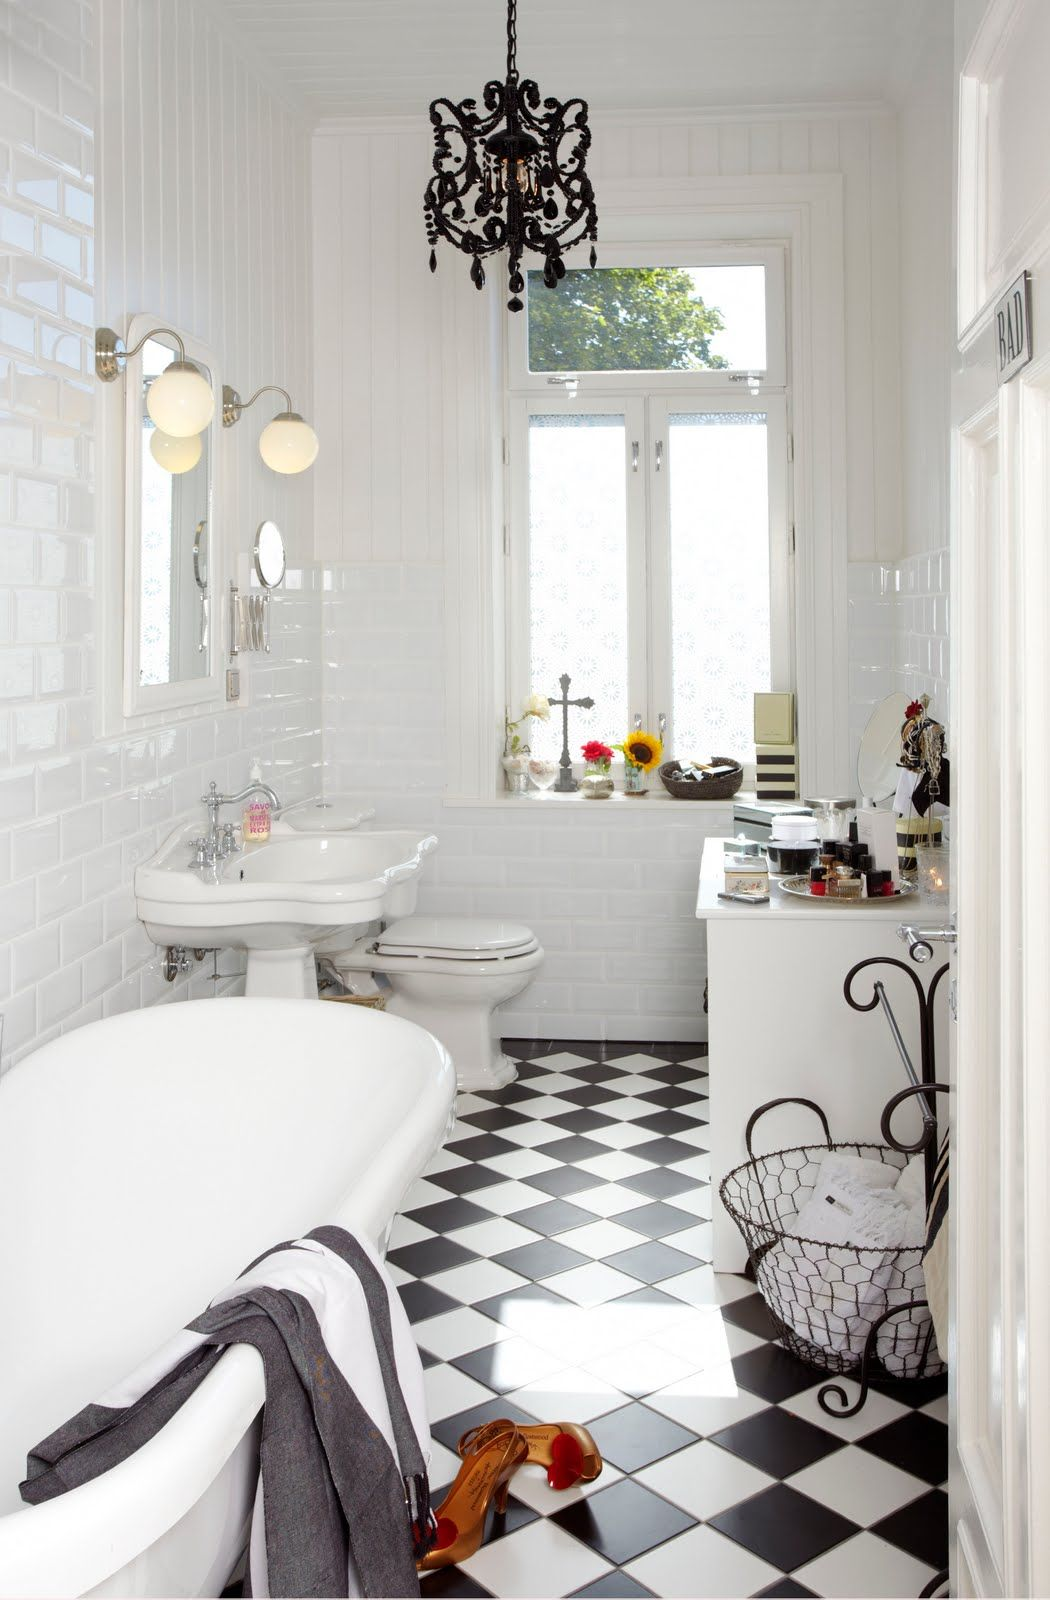 Pin By Lexie Whitworth On There S No Place Like Home White Bathroom Designs Bathroom Design Bathroom Inspiration